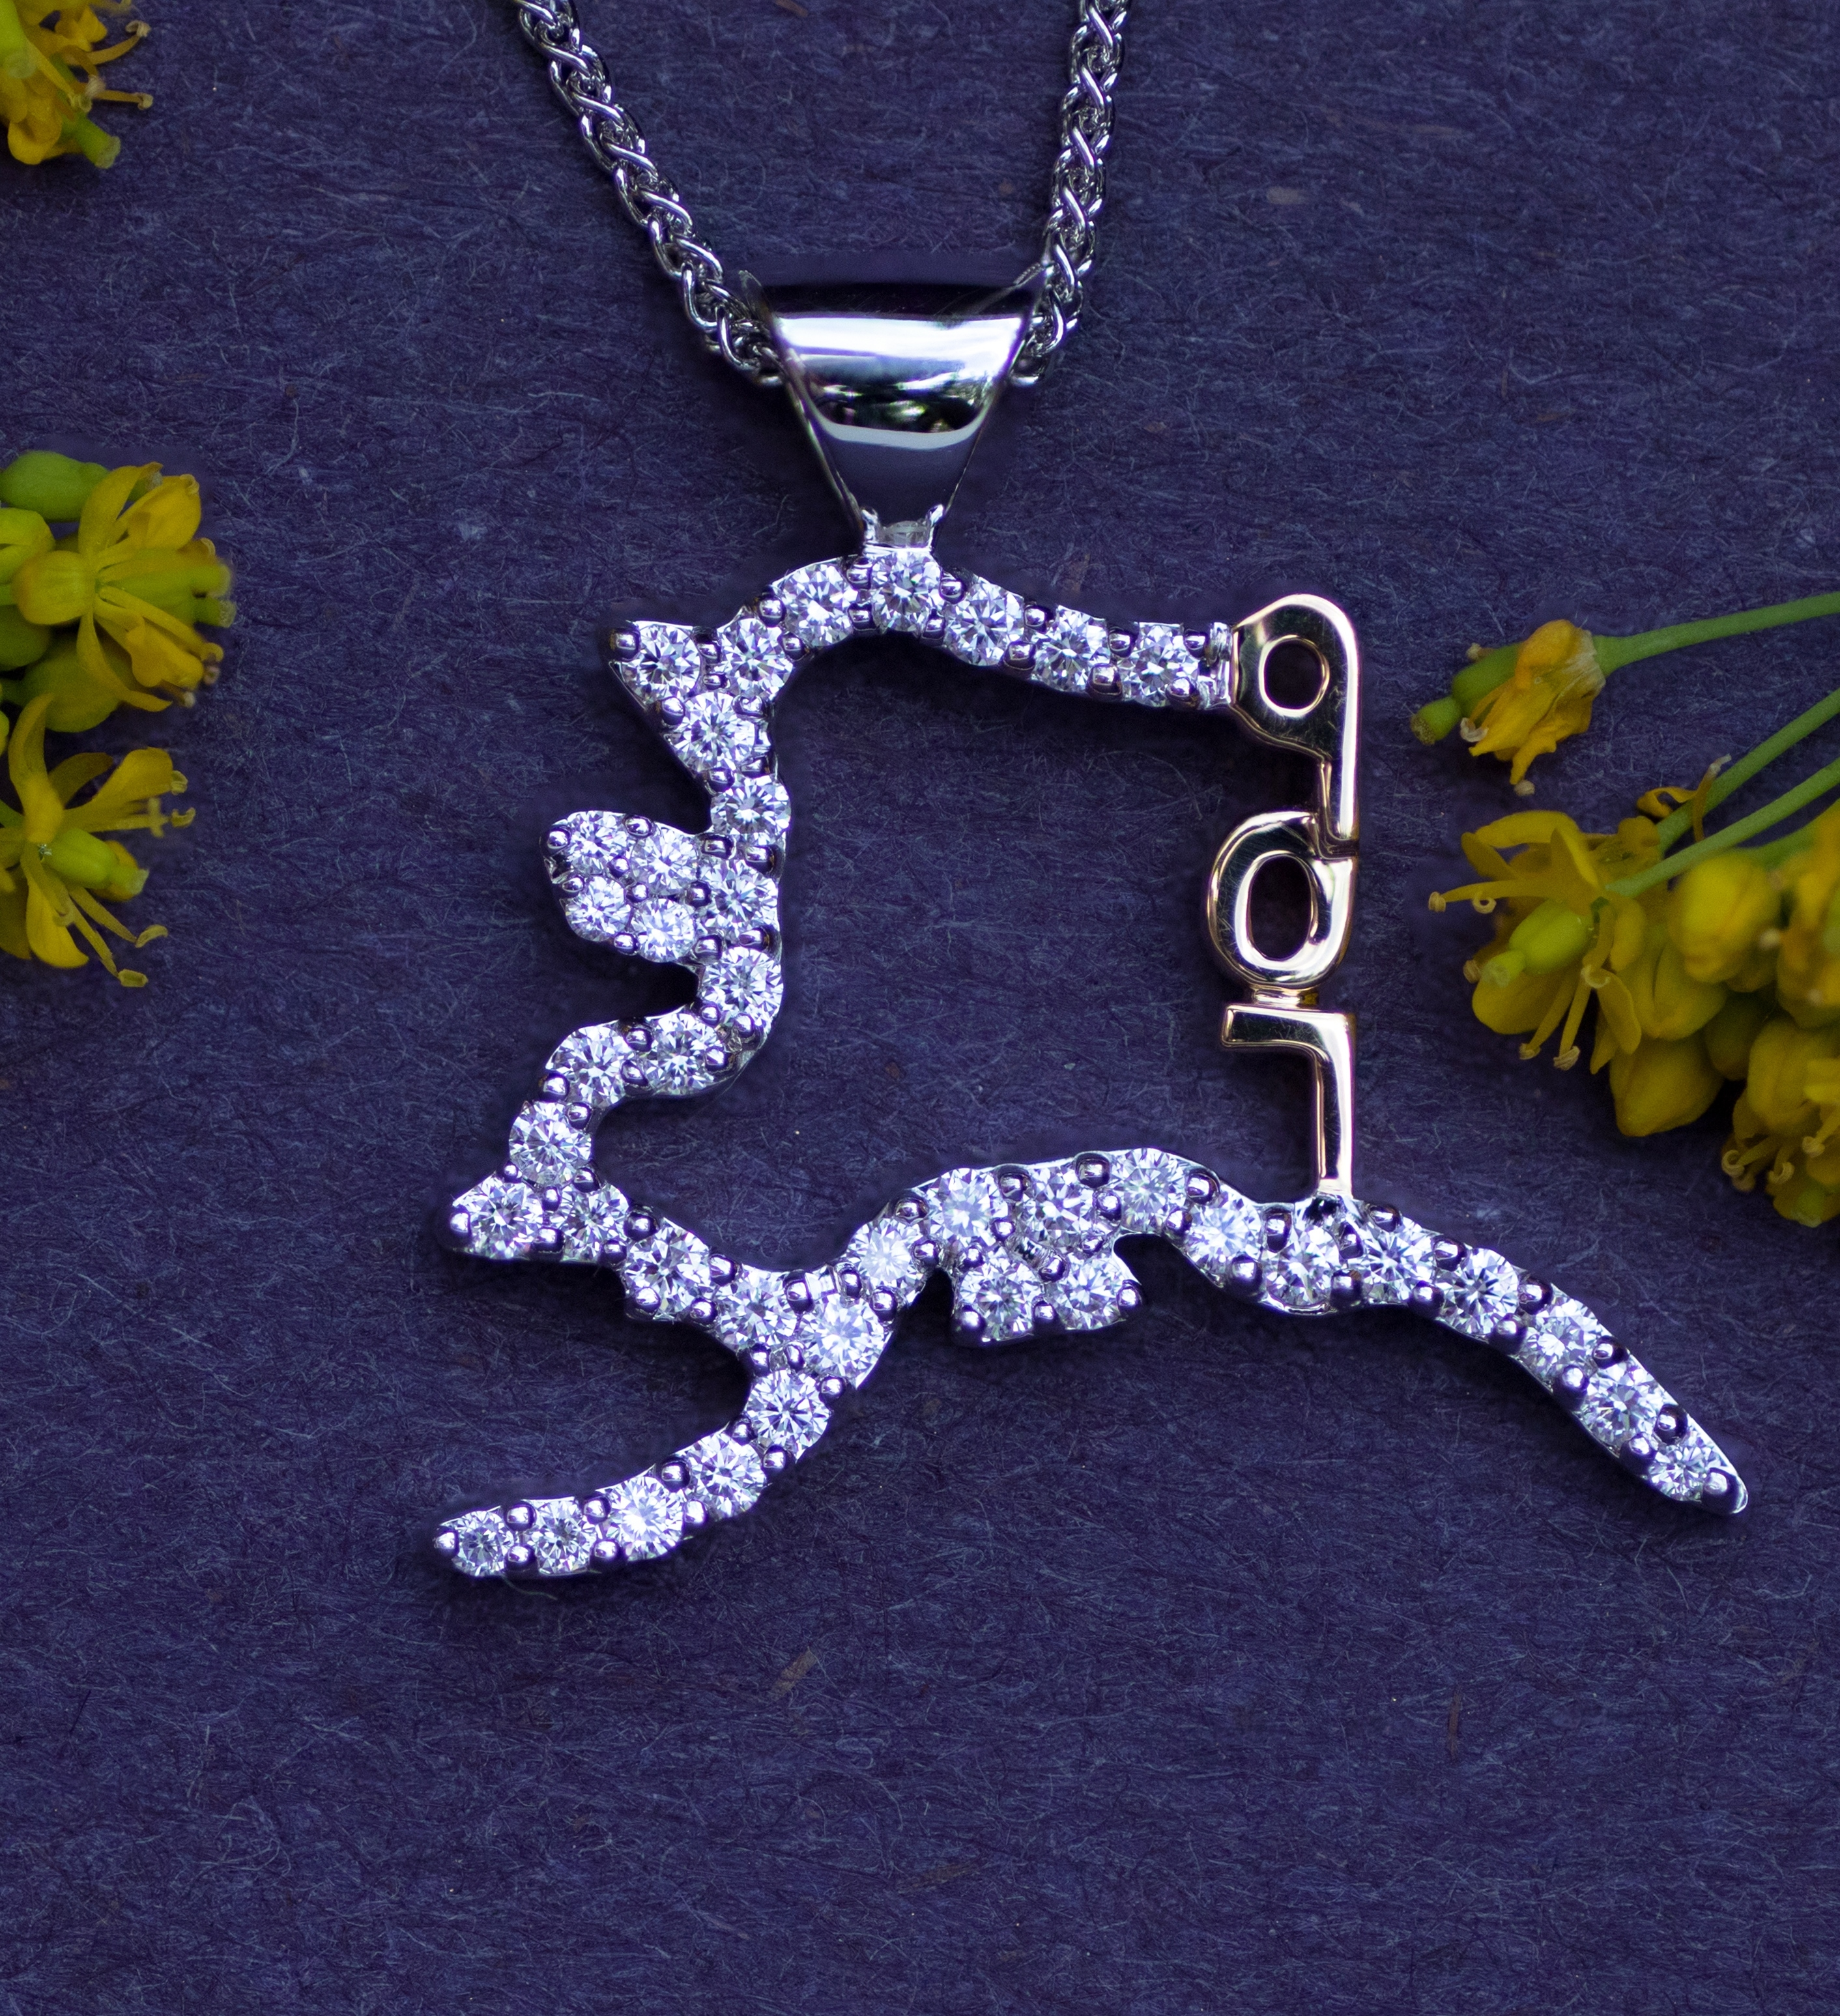 Alaska Pendant in 14kt White Gold with Diamonds